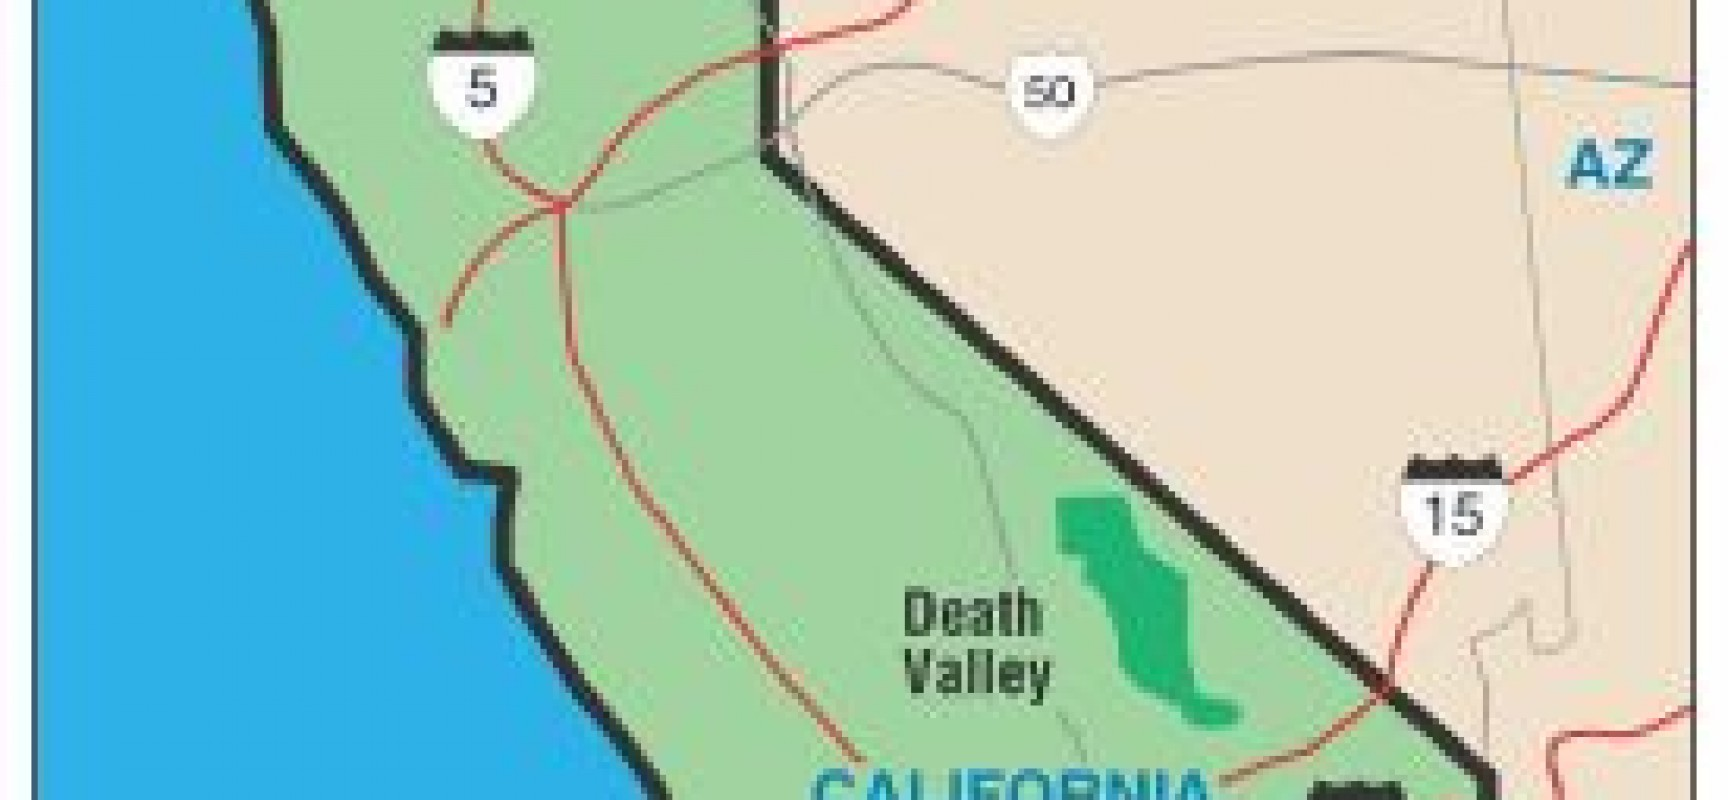 Death Valley Is A Famous Desert Located In California United States Equator Coordinates Are 36014 49 N 116049 01 W Most Of Us Don T Know That It Is